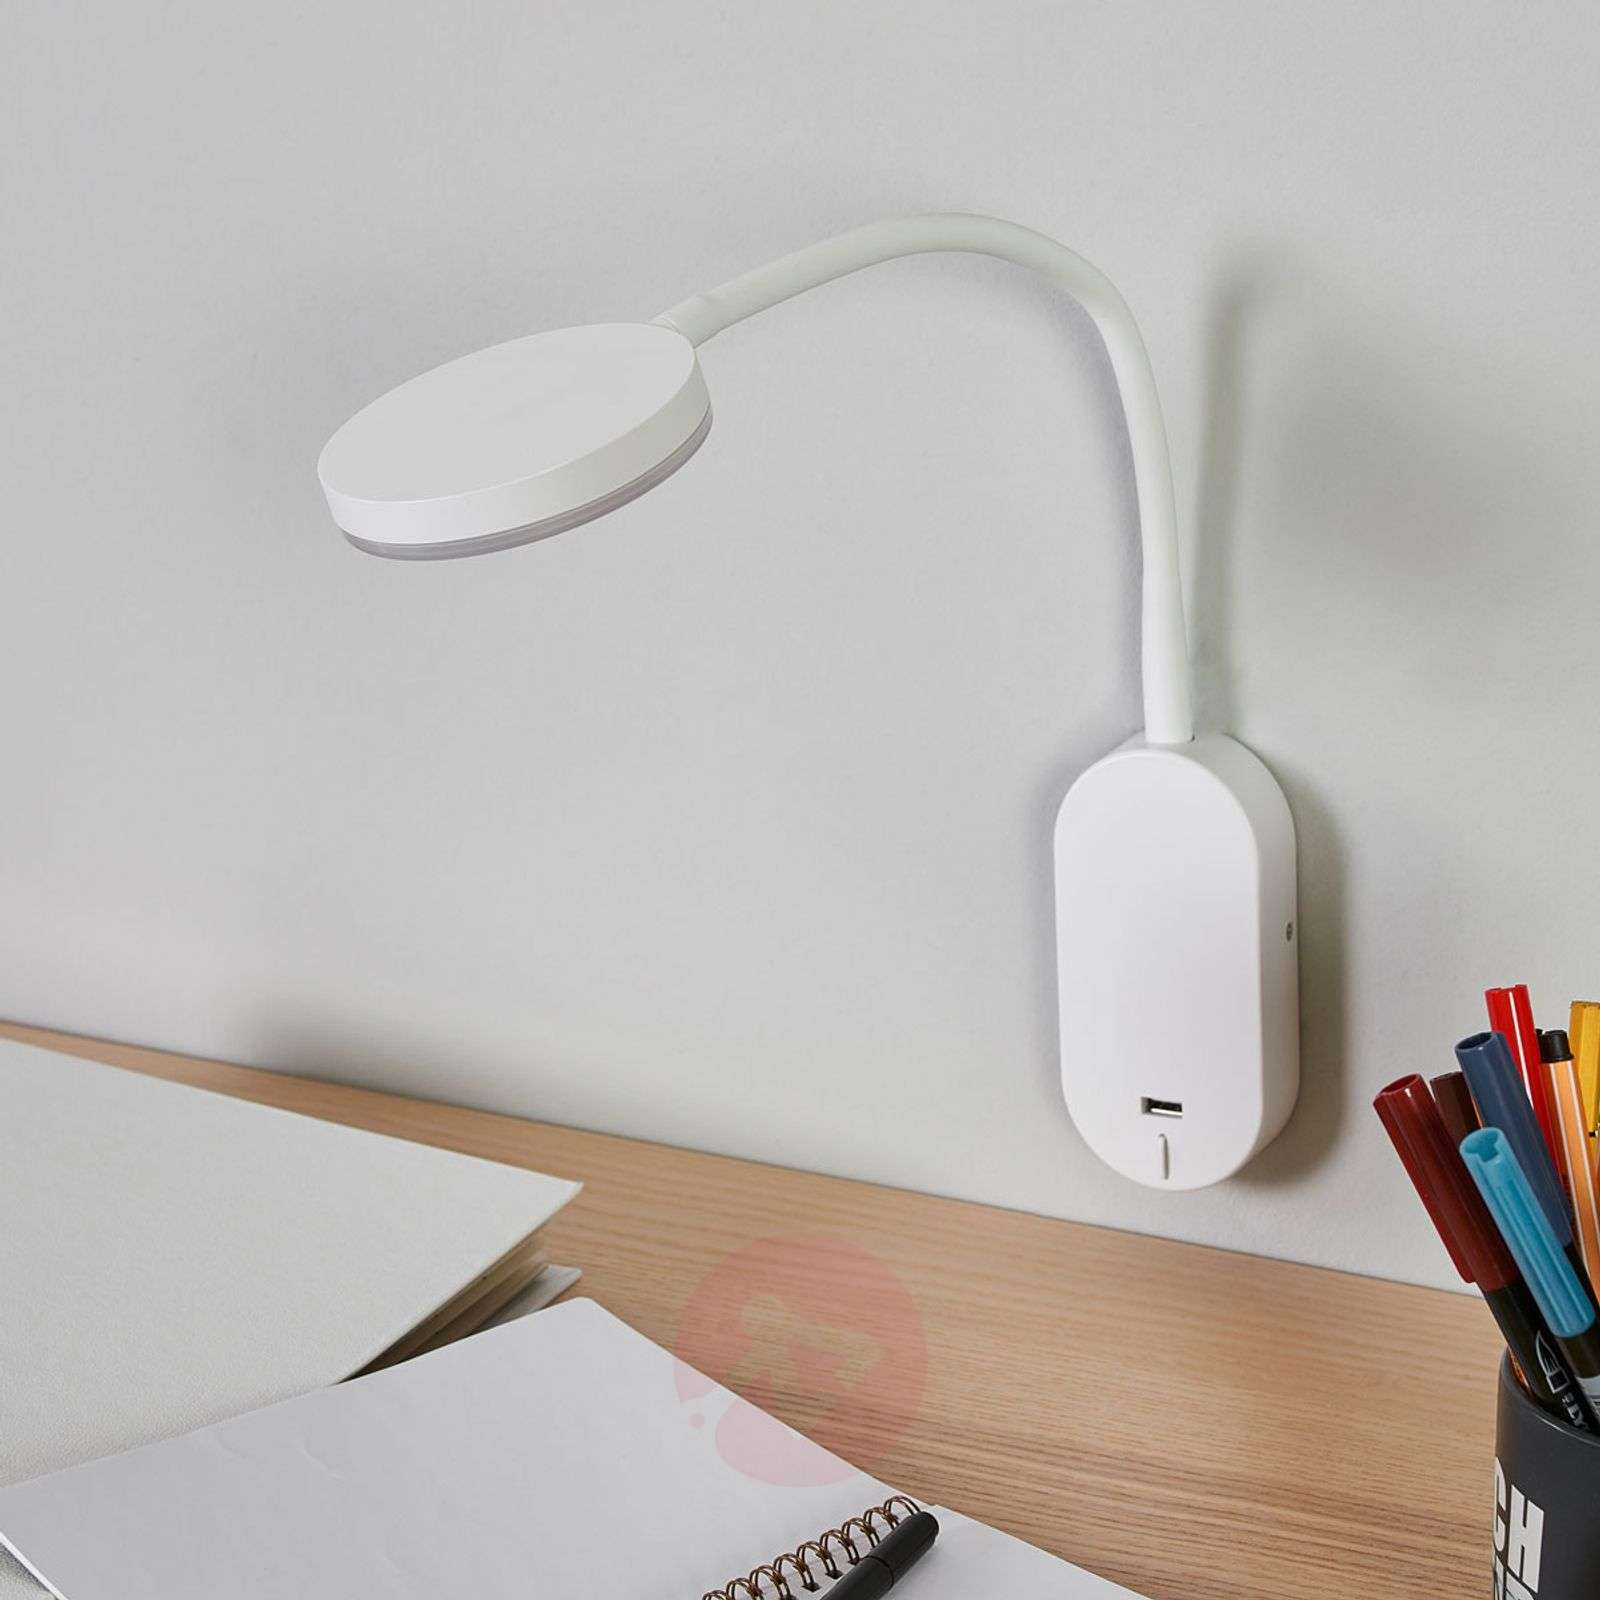 Flexible arm led wall light milow with usb port lights flexible arm led wall light milow with usb port 9643030 01 mozeypictures Choice Image